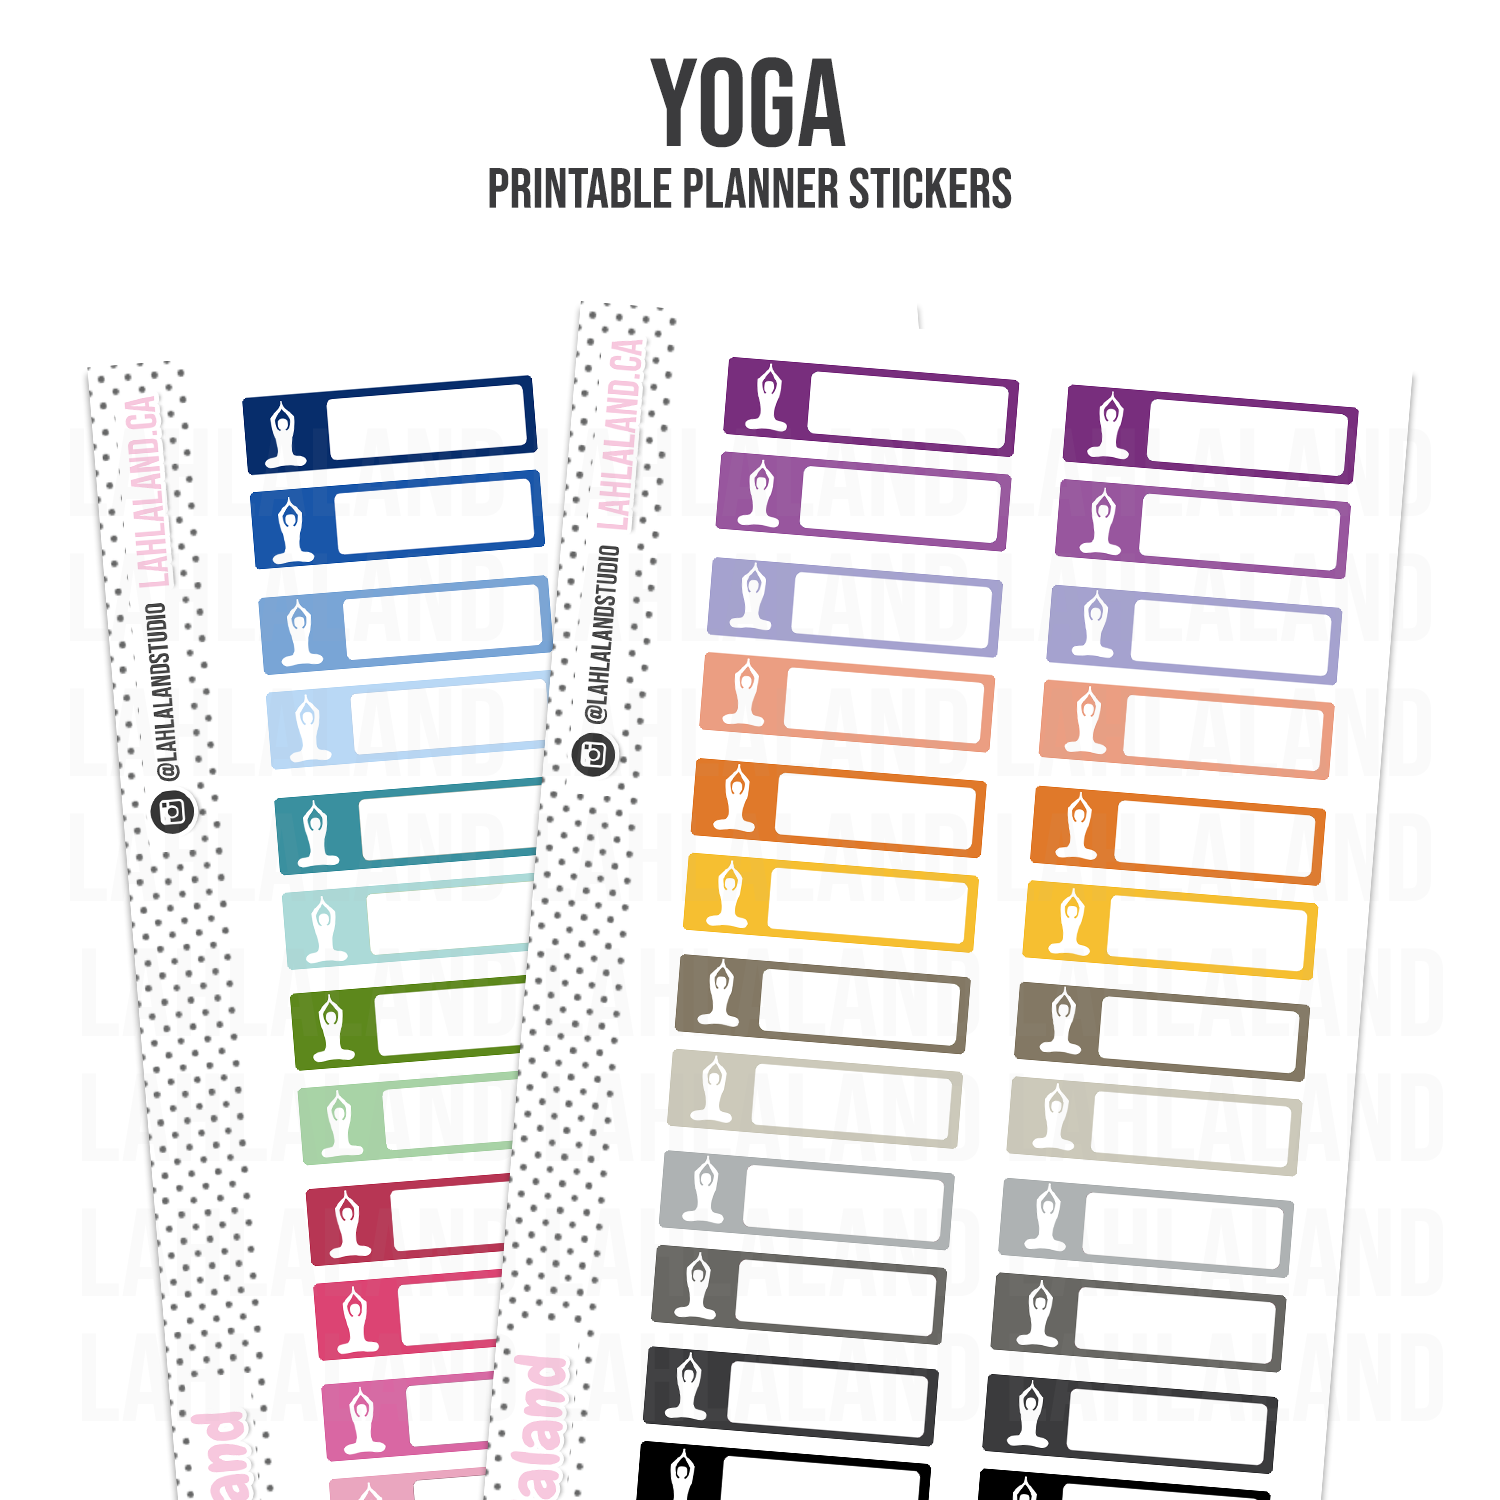 Yoga - Functional Stickers